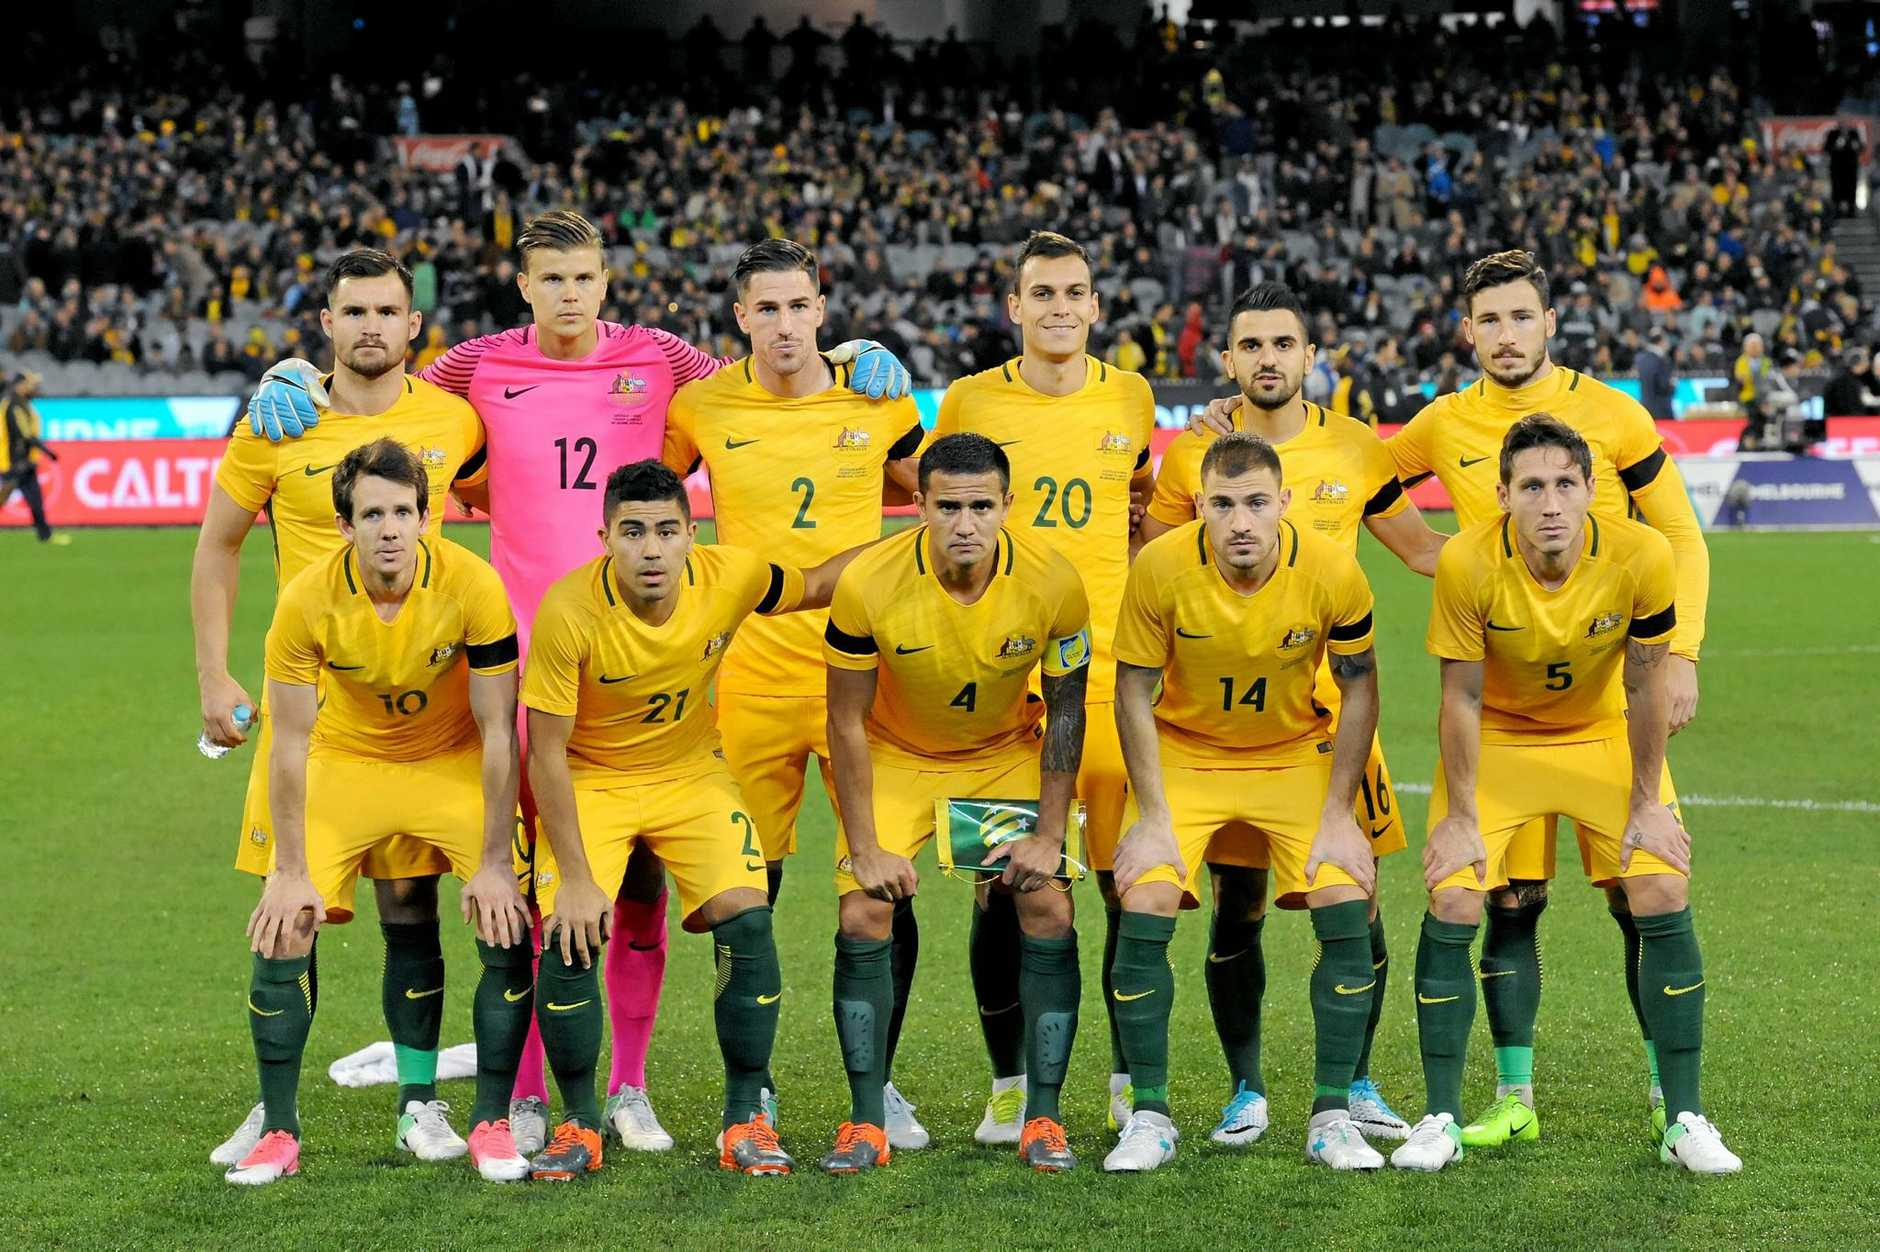 Australian players line up for the team photo during an international friendly between Australia and Brazil, at the MCG in Melbourne, Tuesday, June 13, 2017.(AAP Image/Joe Castro) NO ARCHIVING, EDITORIAL USE ONLY